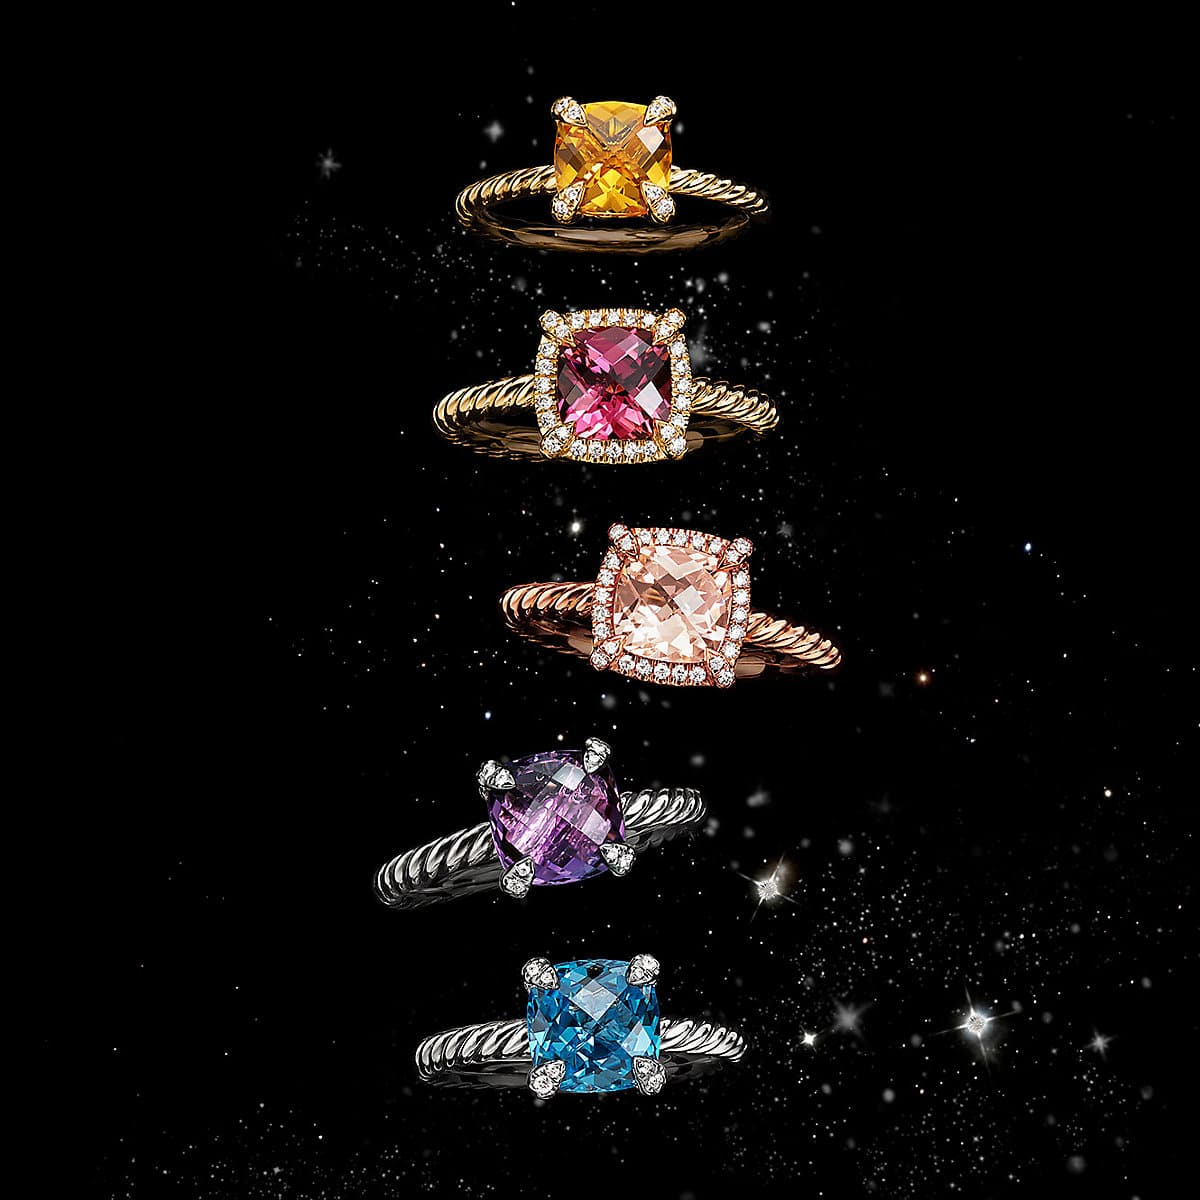 A color photo shows a vertical stack of five David Yurman women's rings from the Châtelaine collection floating in front of a starry night sky. The jewelry is crafted from 18K yellow, rose or white gold or sterling silver with or without pavé diamonds surrounding colored gemstones.